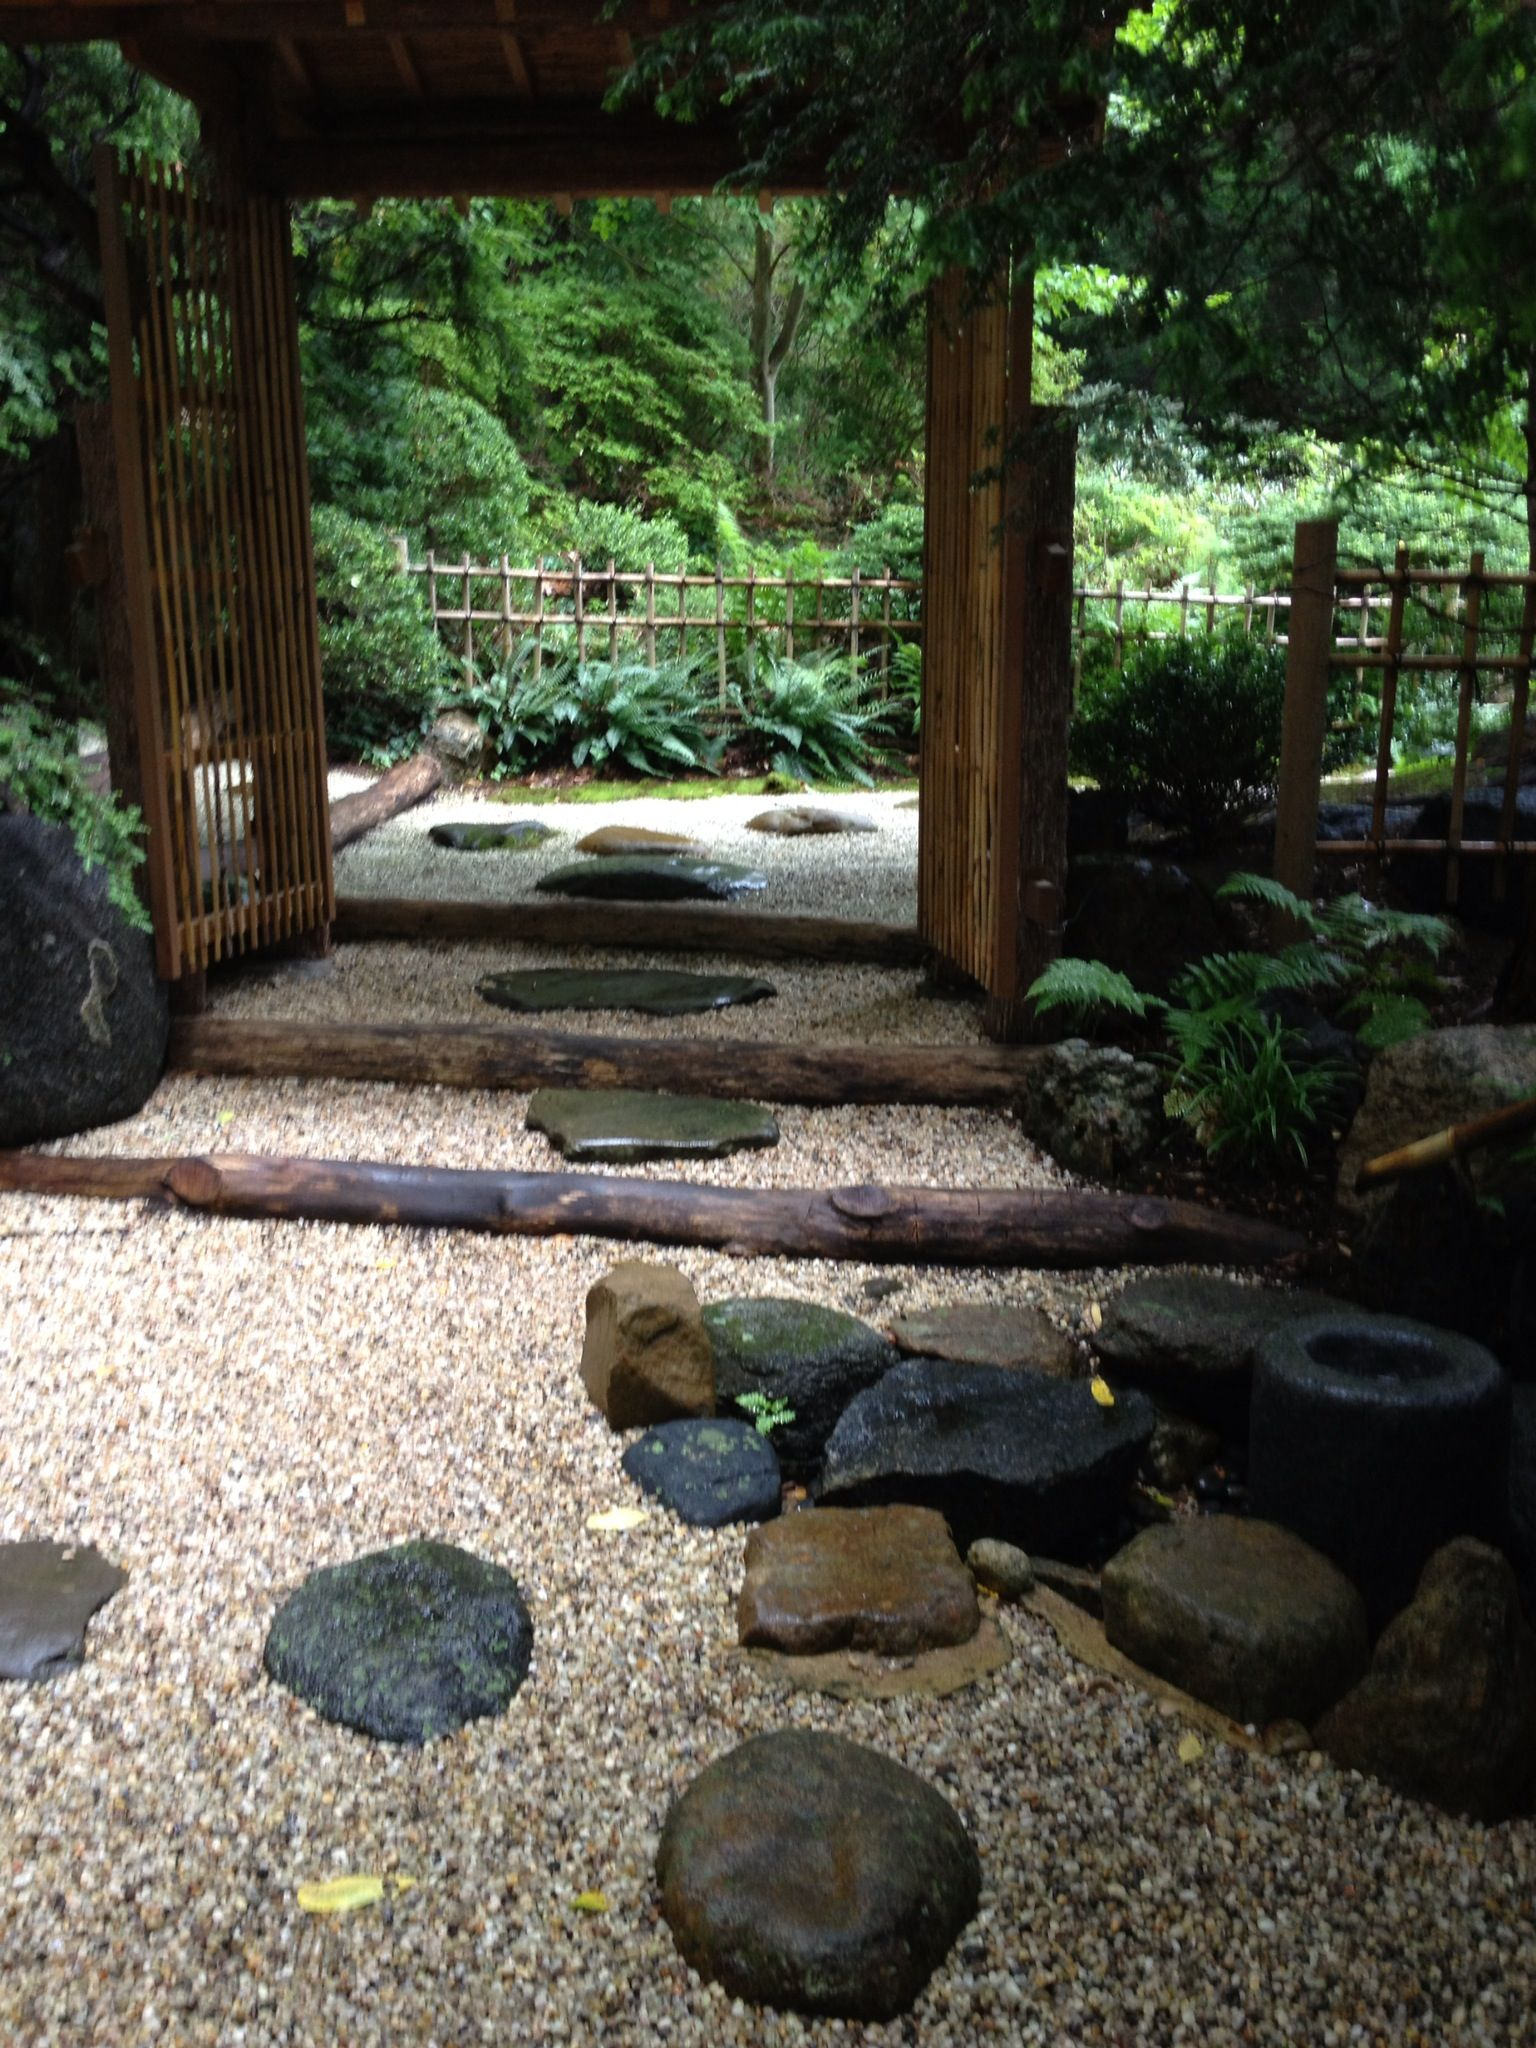 Japanese Stroll Garden Springfield: John Humes Japanese Stroll Garden, Mill Neck, NY. Photo By